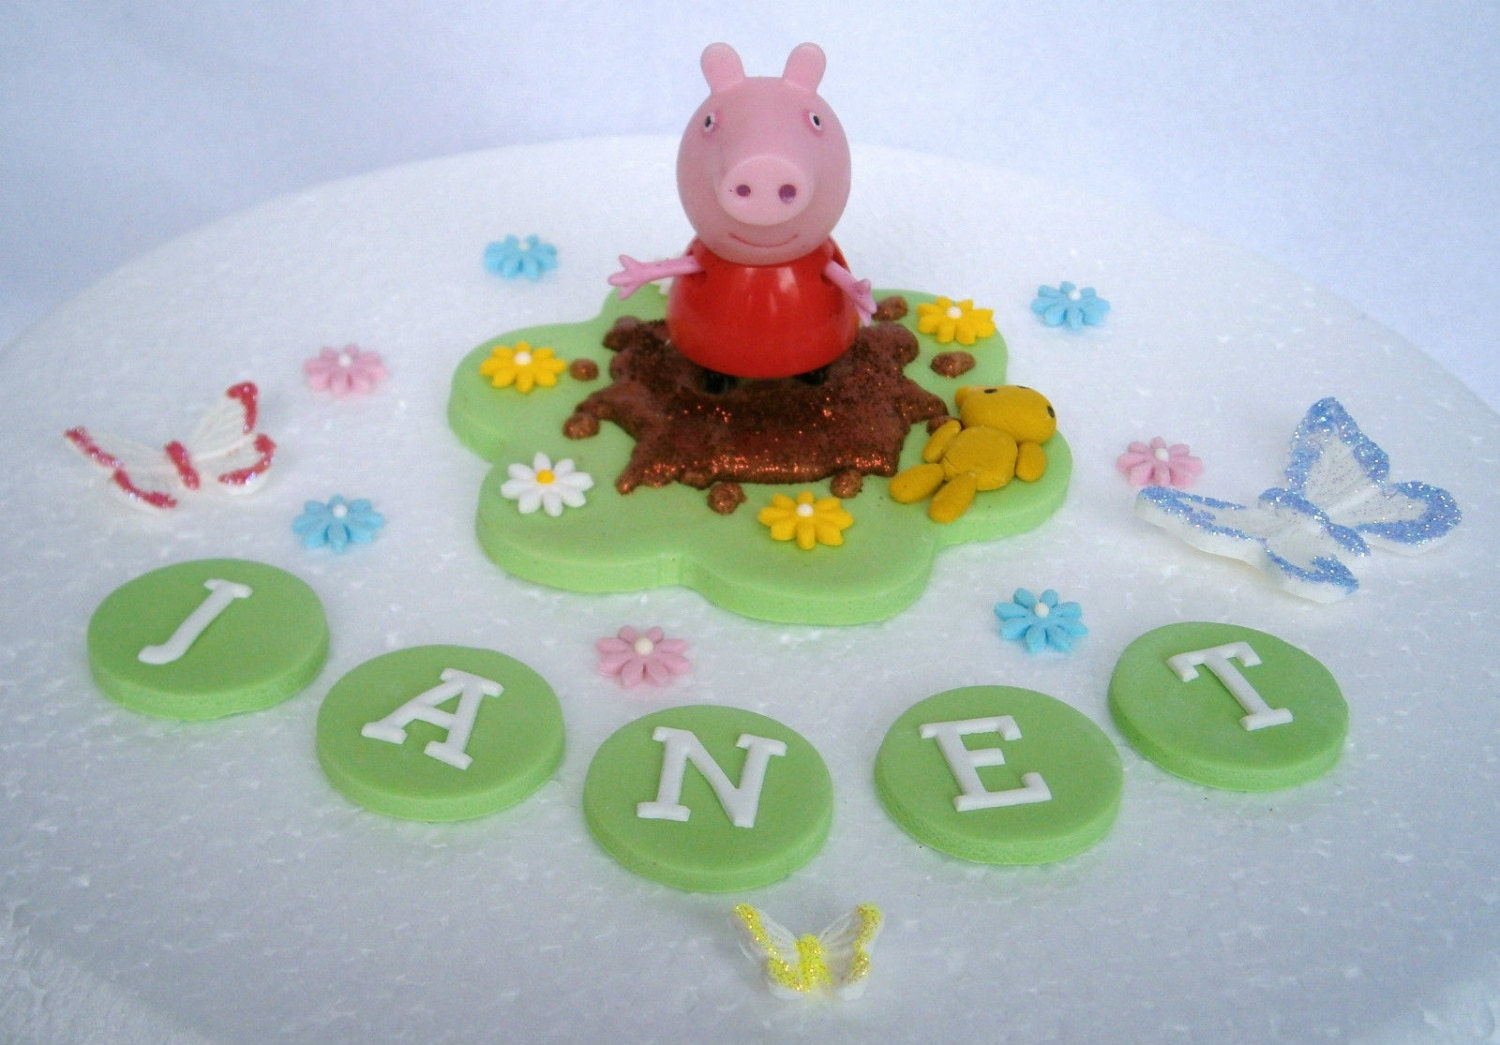 edible peppa pig cake topper with non edible keepkake peppa